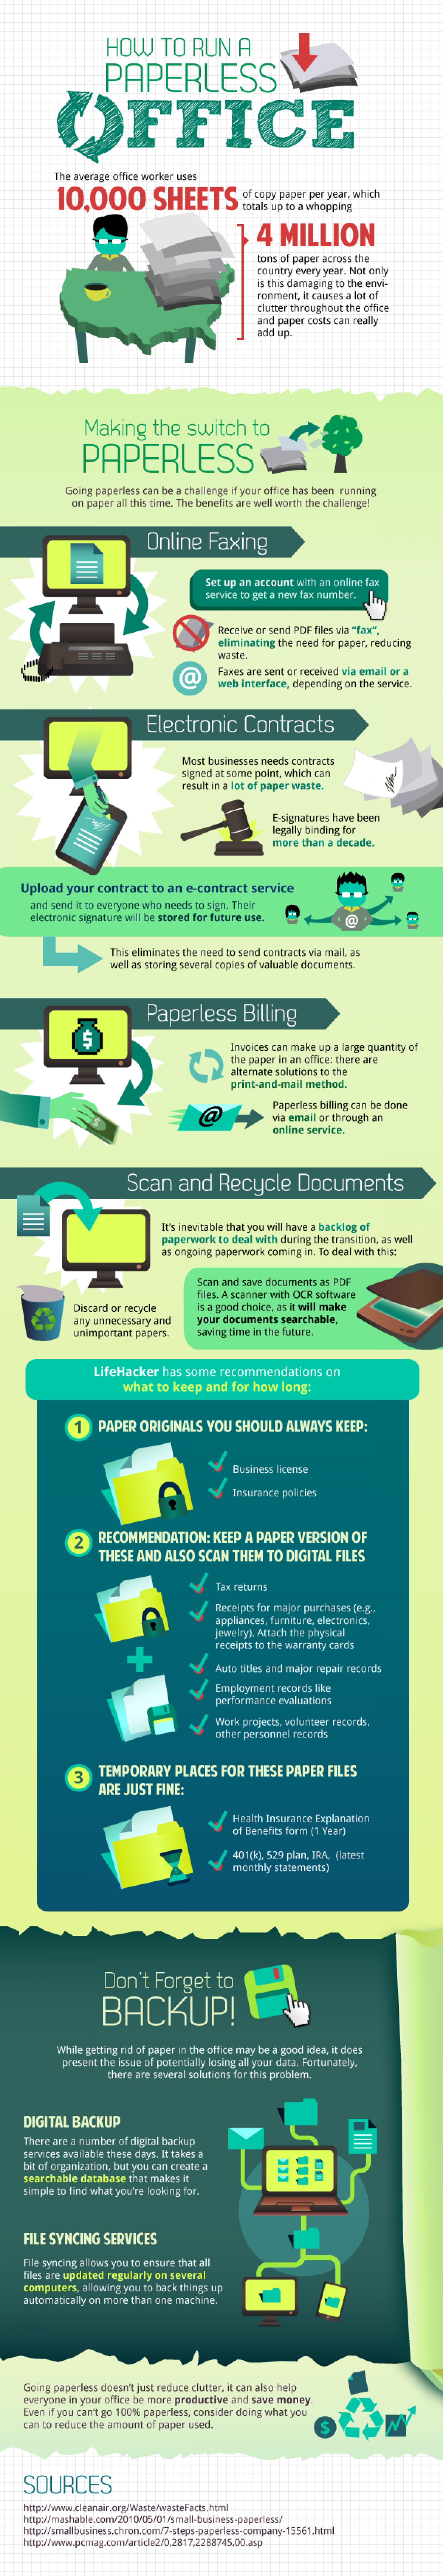 How to Run a Paperless Office Infographic